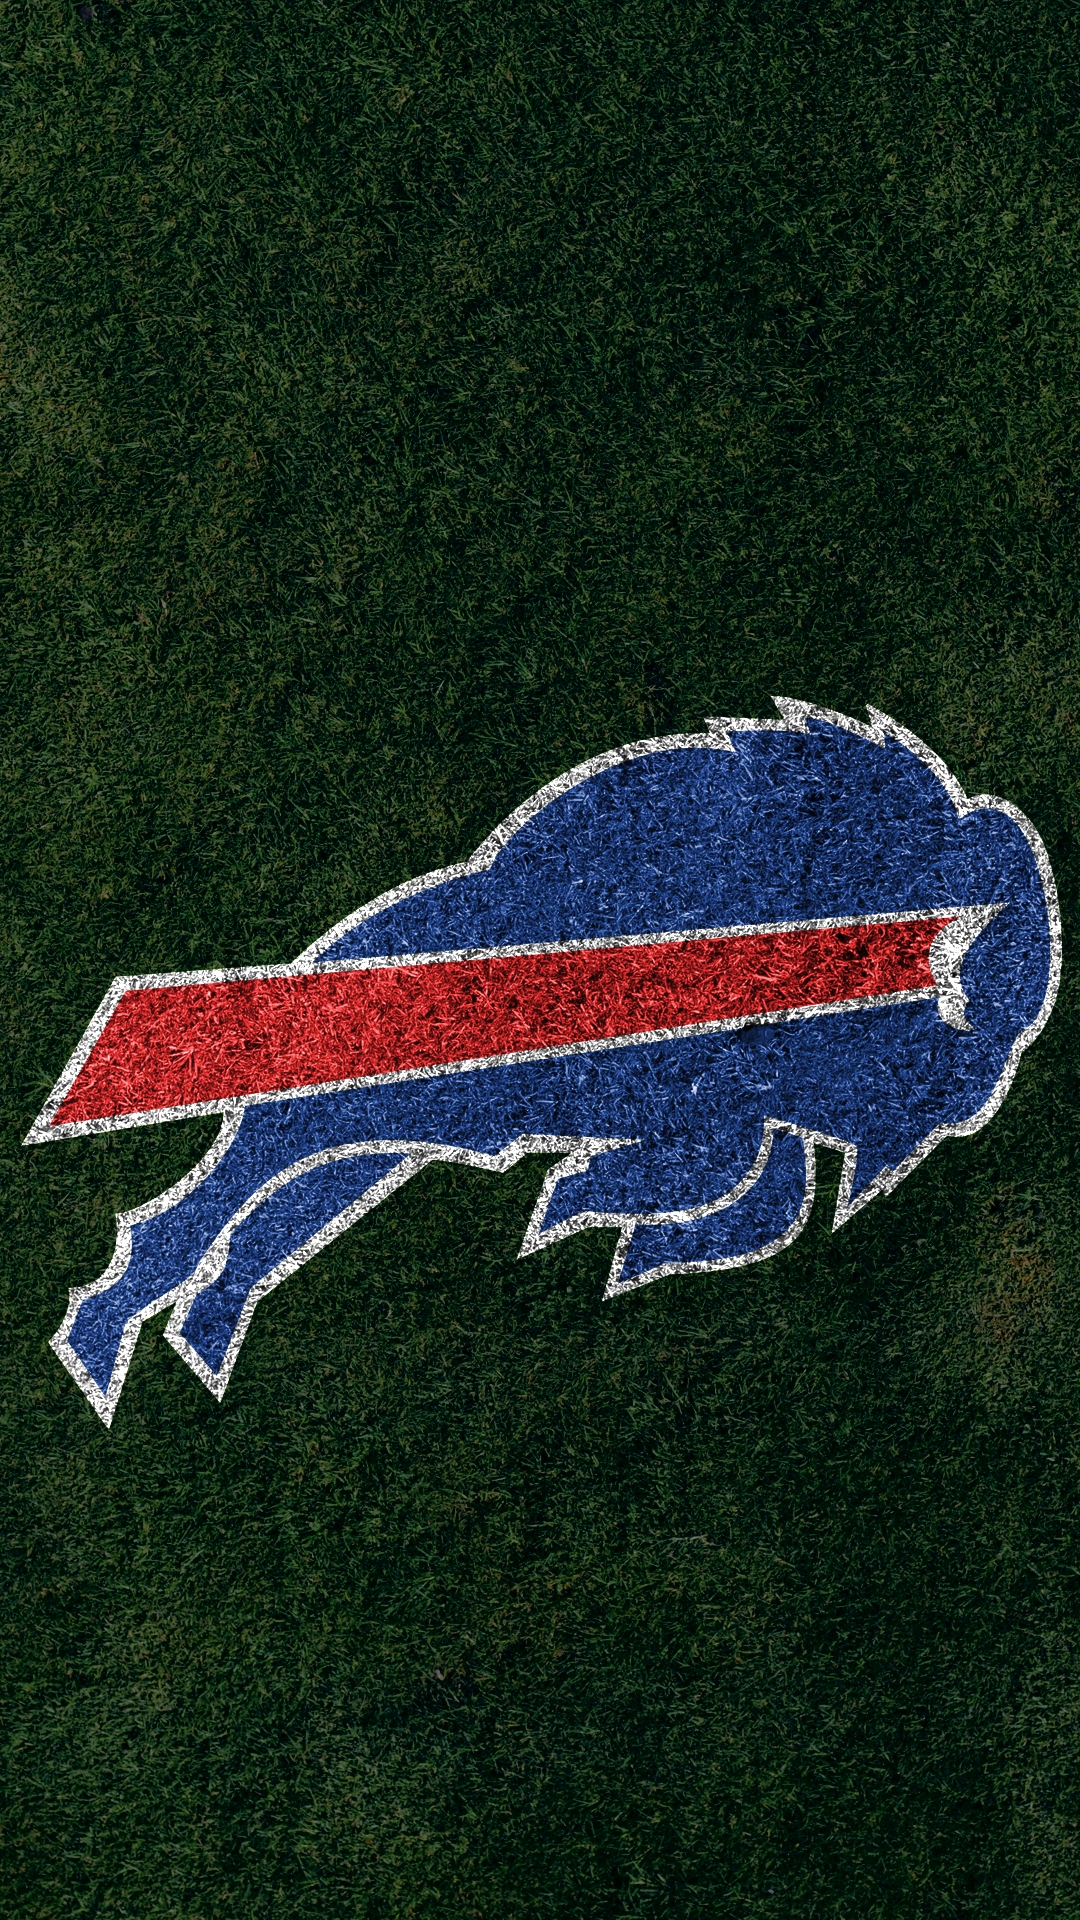 2018 buffalo bills wallpapers - pc |iphone| android